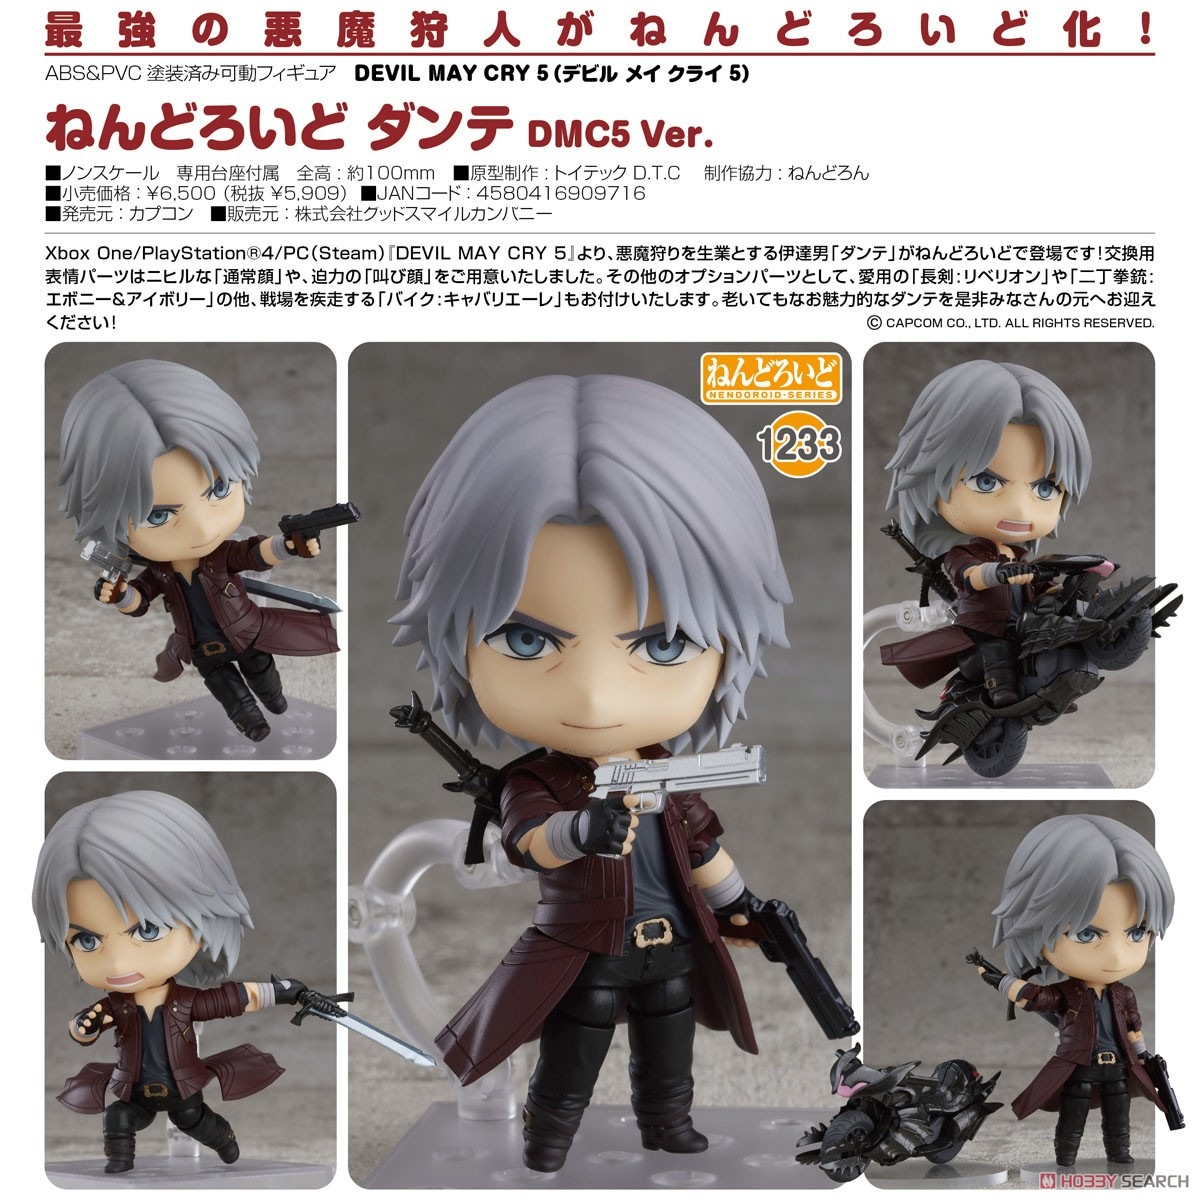 In STOCK Nendoroid Devil May Cry 5 Dante 1233 Action Figure DMC5 Ver